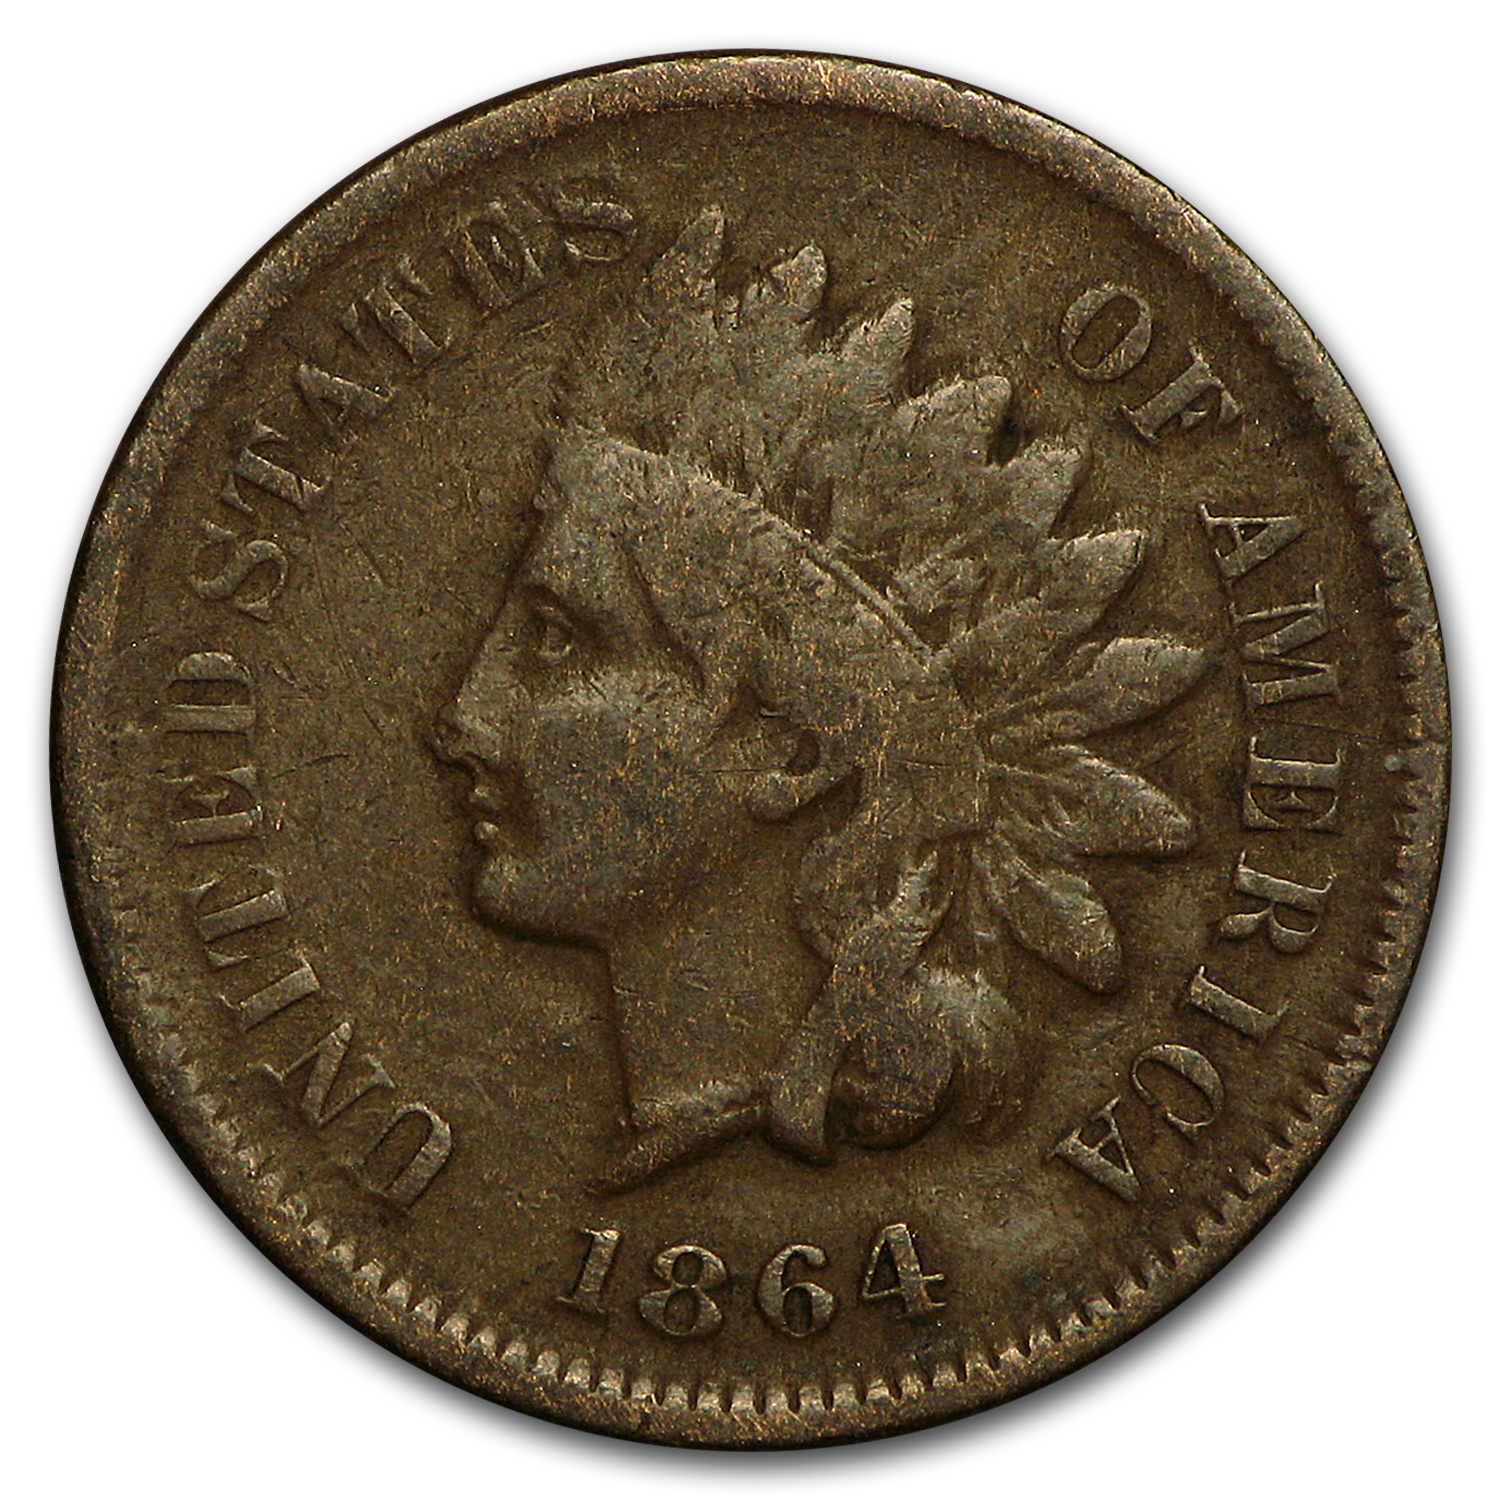 1864 L Indian Head Cent Vg Indian Head Cents 1859